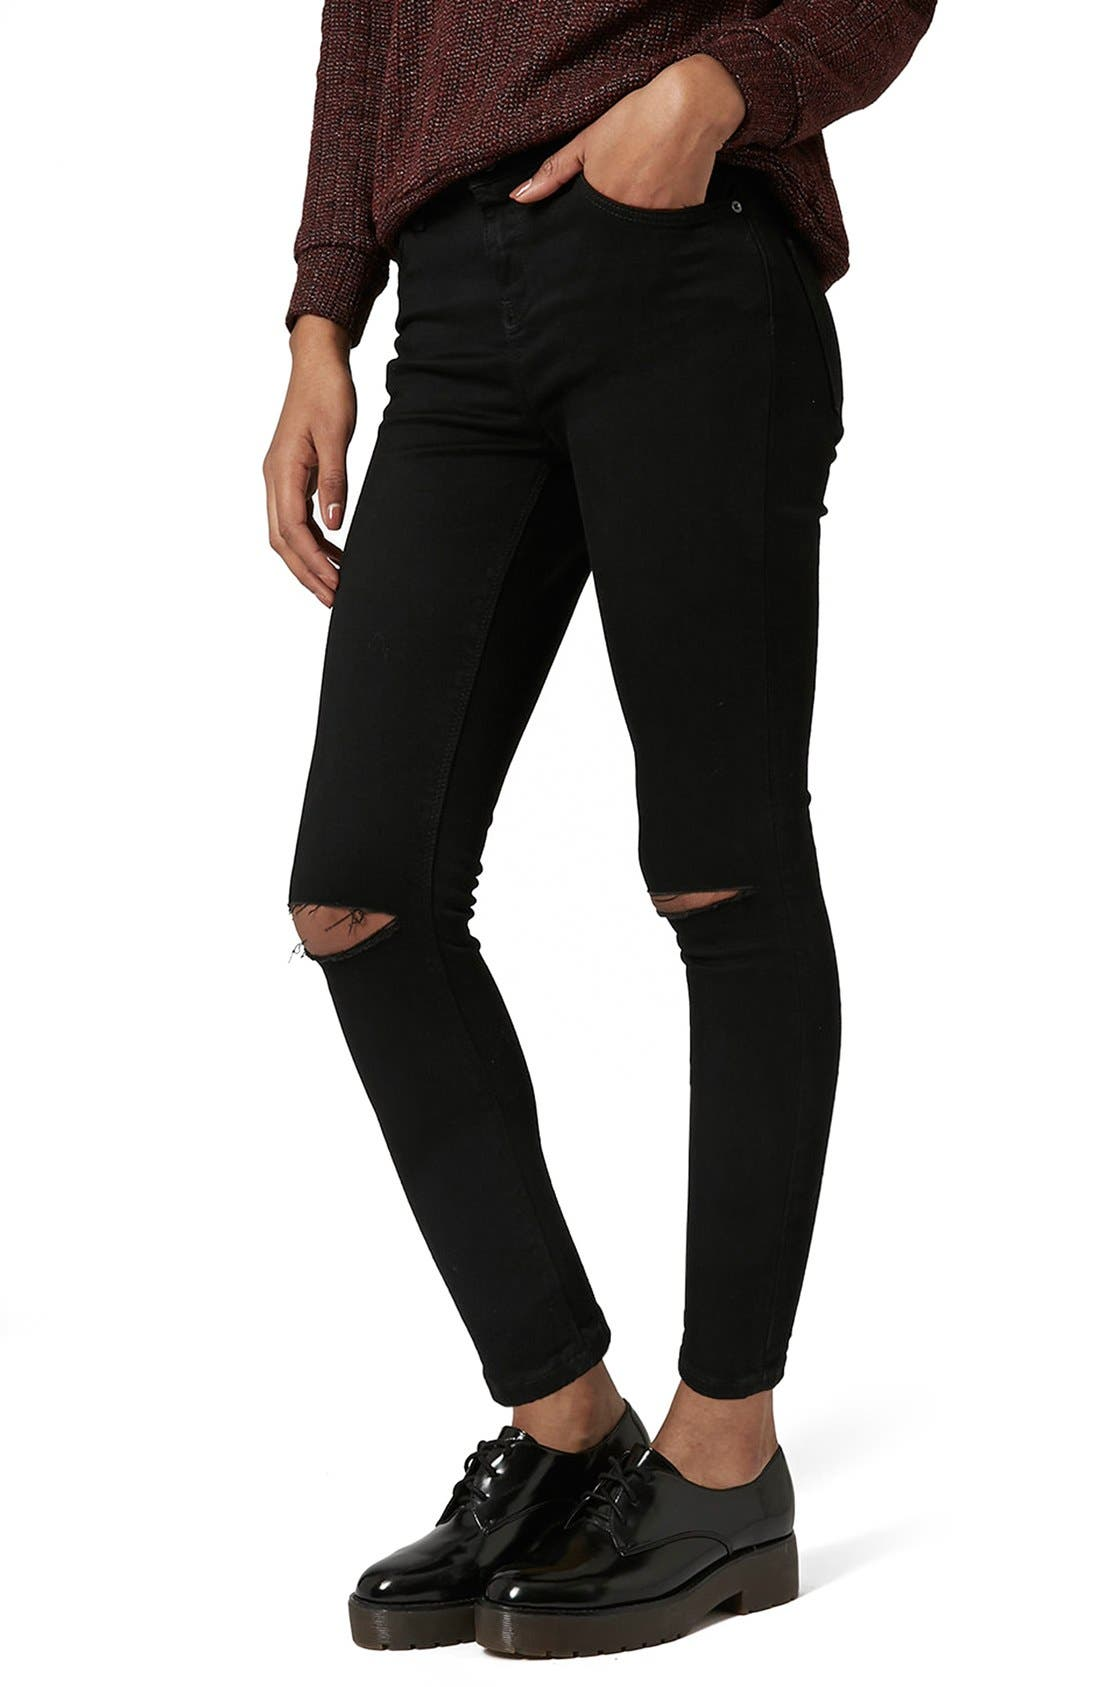 Main Image - Topshop Moto 'Jamie' Ripped Skinny Jeans (Tall)